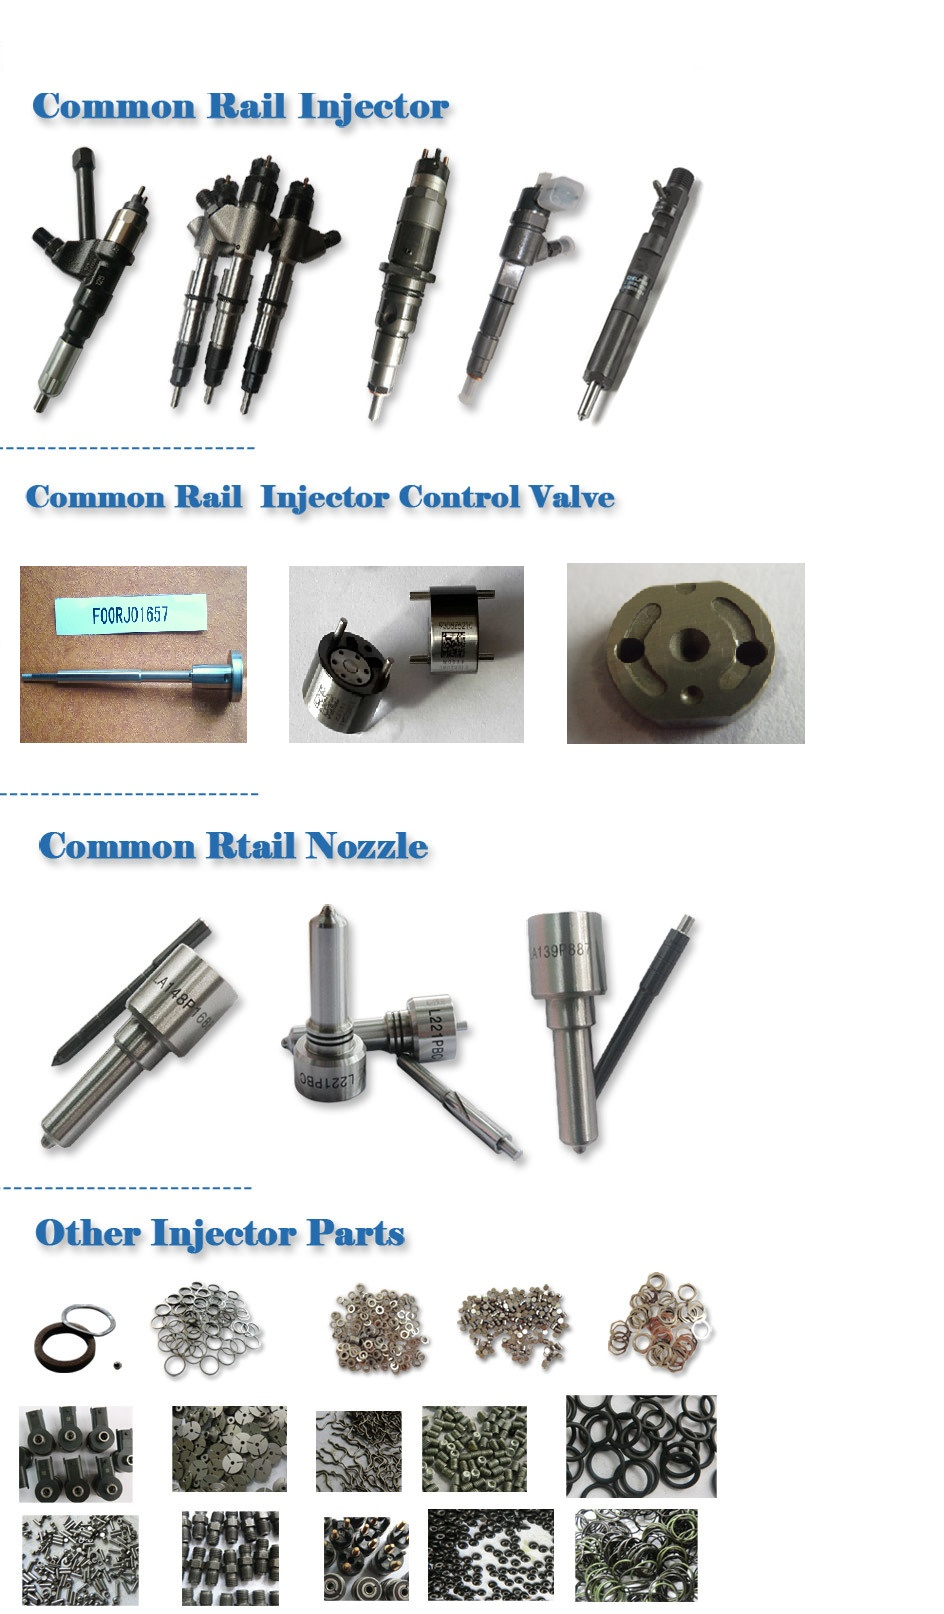 Bosch common rail repair kits